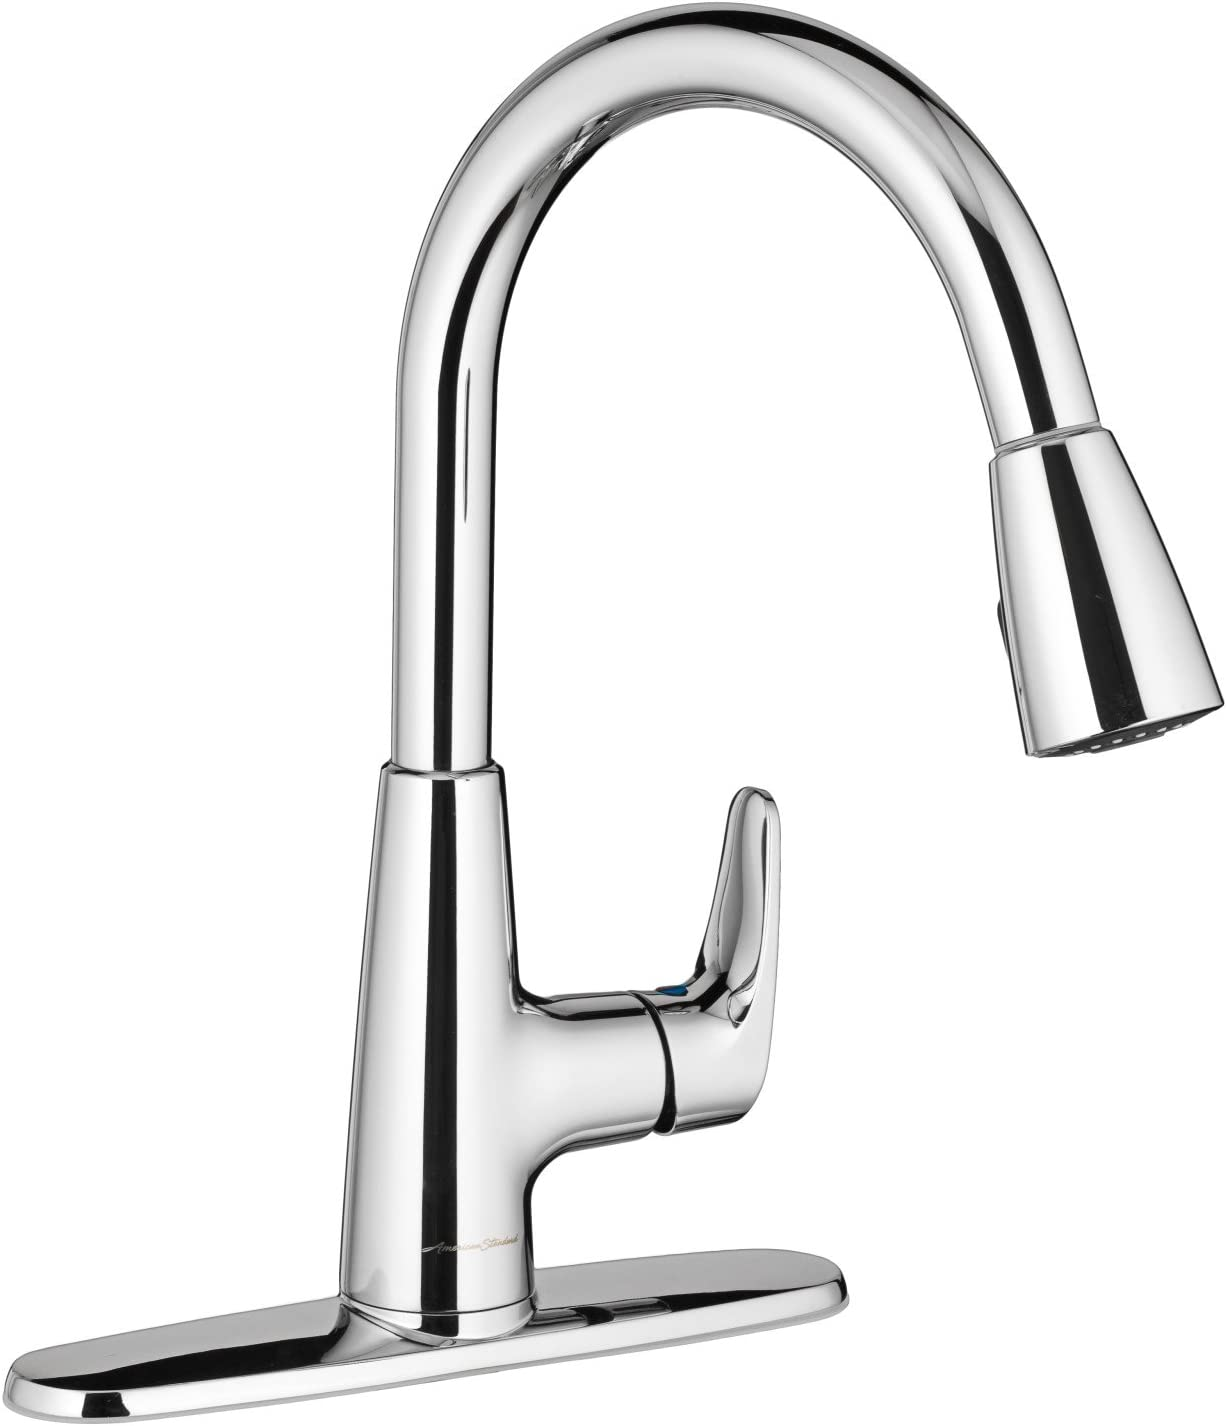 Top 10 Best Kitchen Faucets under $100, $150 to $200 Reviews in 2020 6